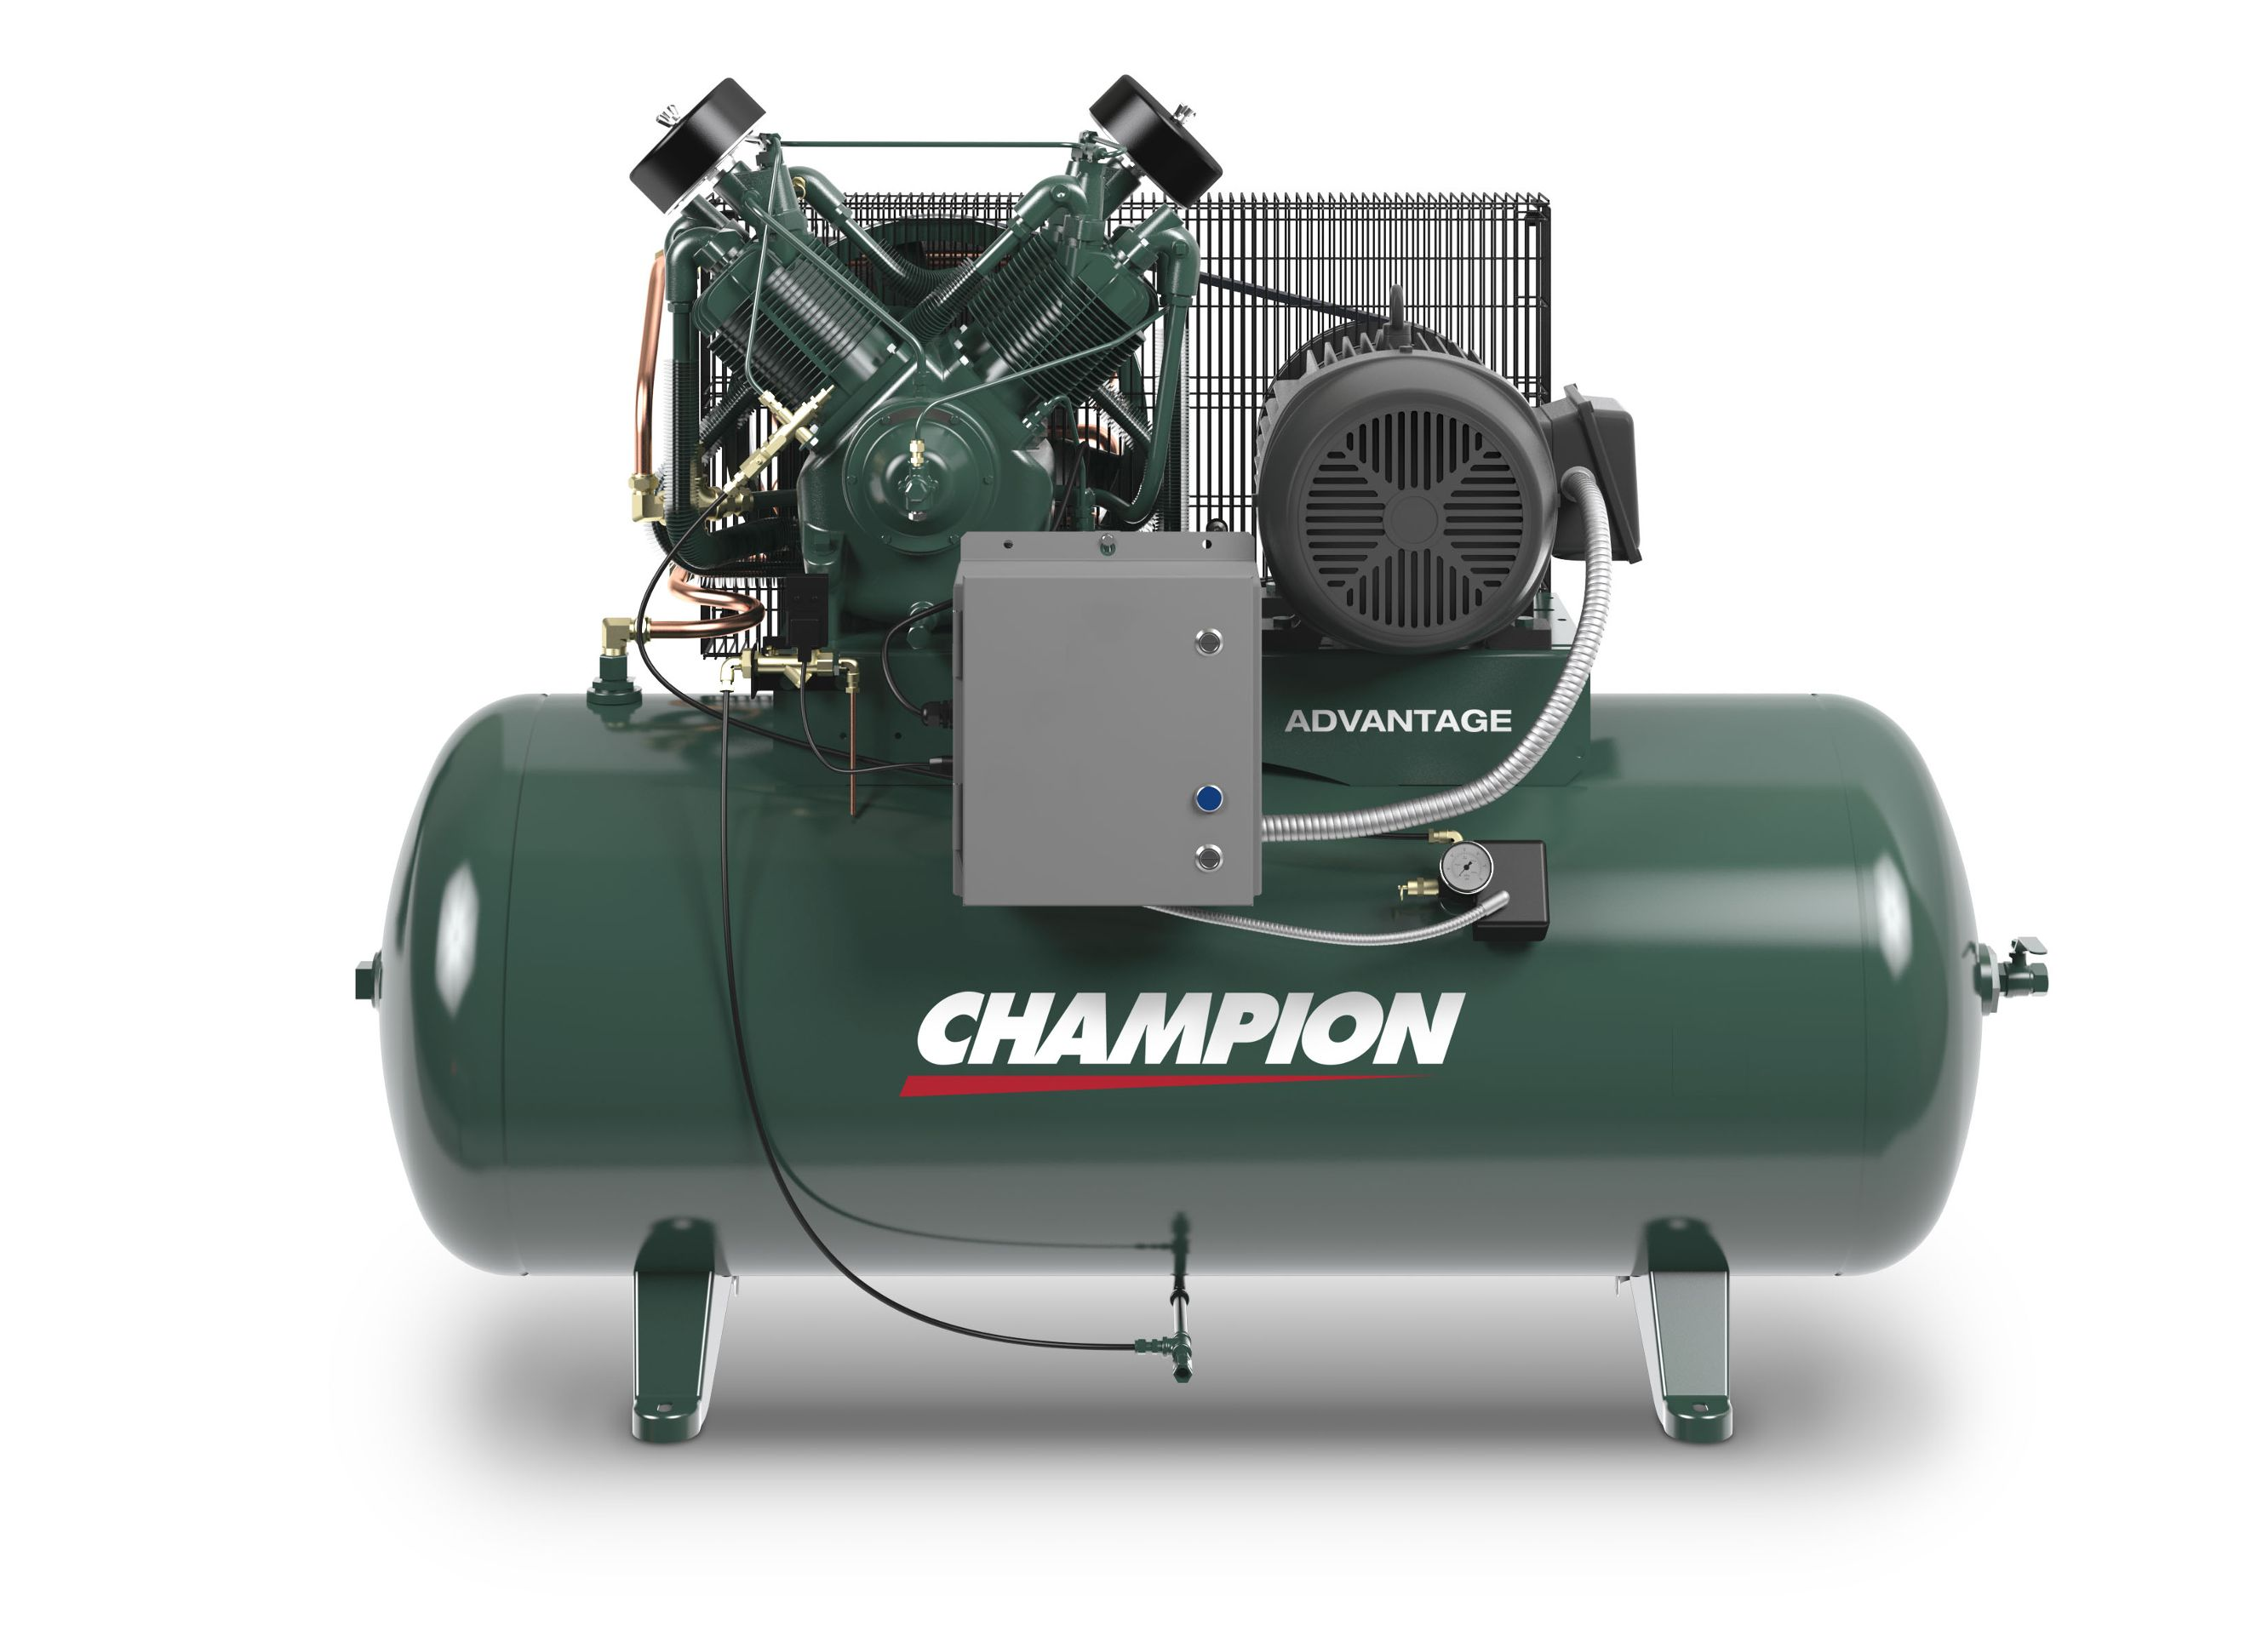 Champion Advantage Air Compressor Motor Wiring Diagram - House ...